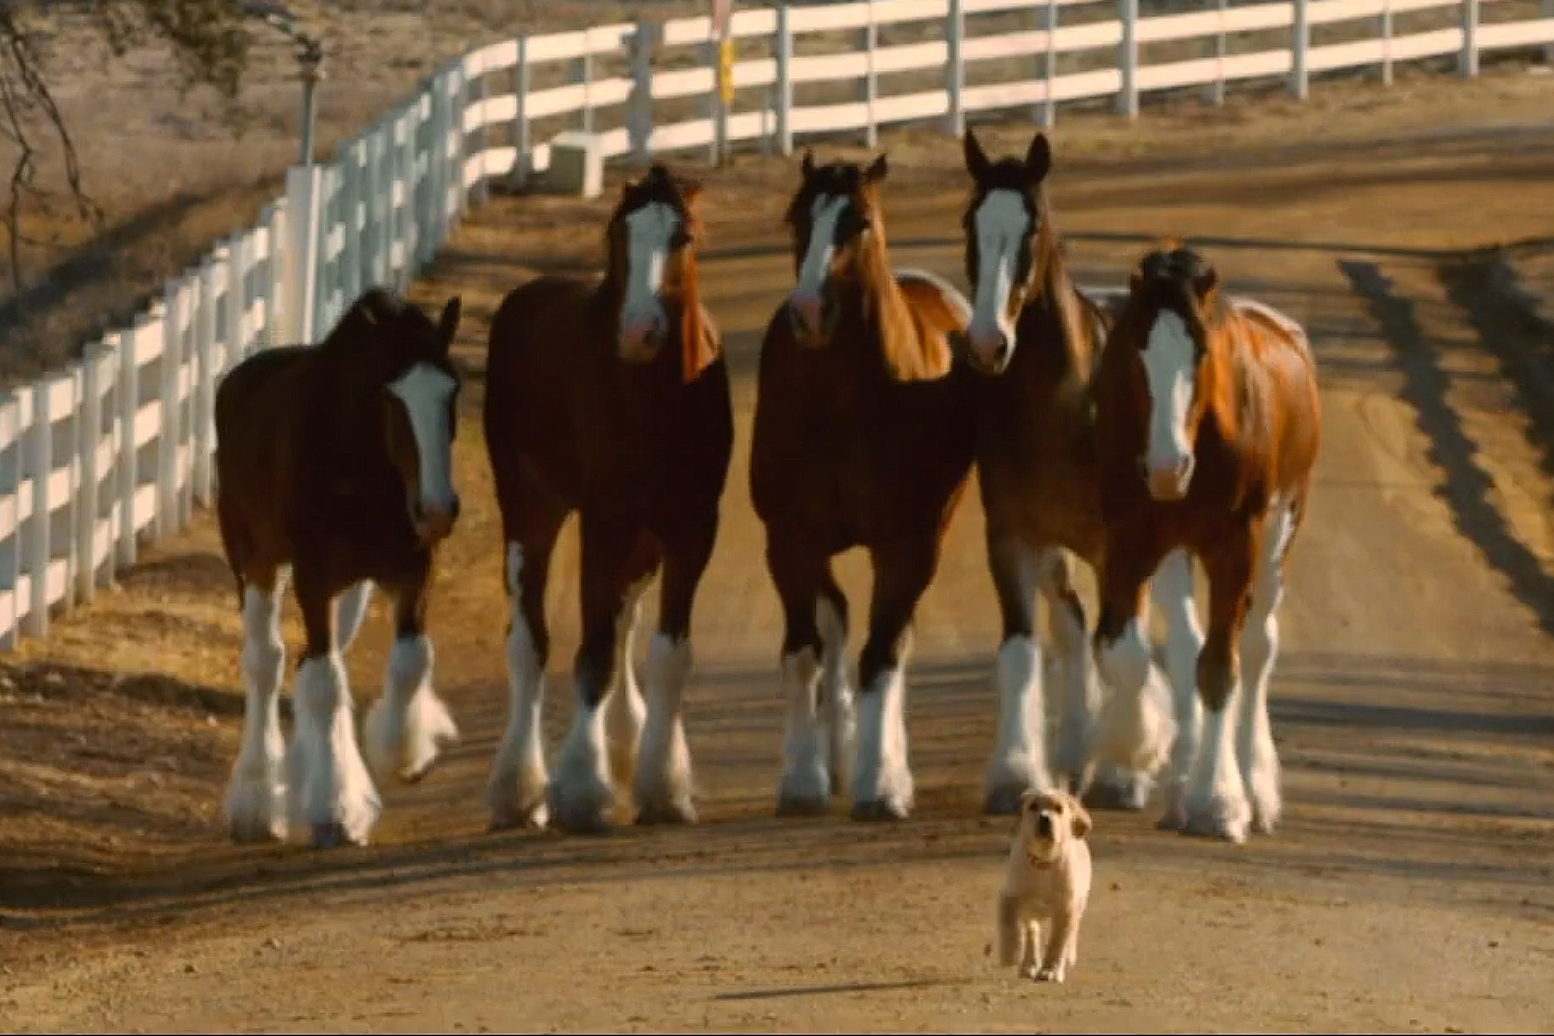 Budweiser's puppy is back in ad luring drinkers to bars